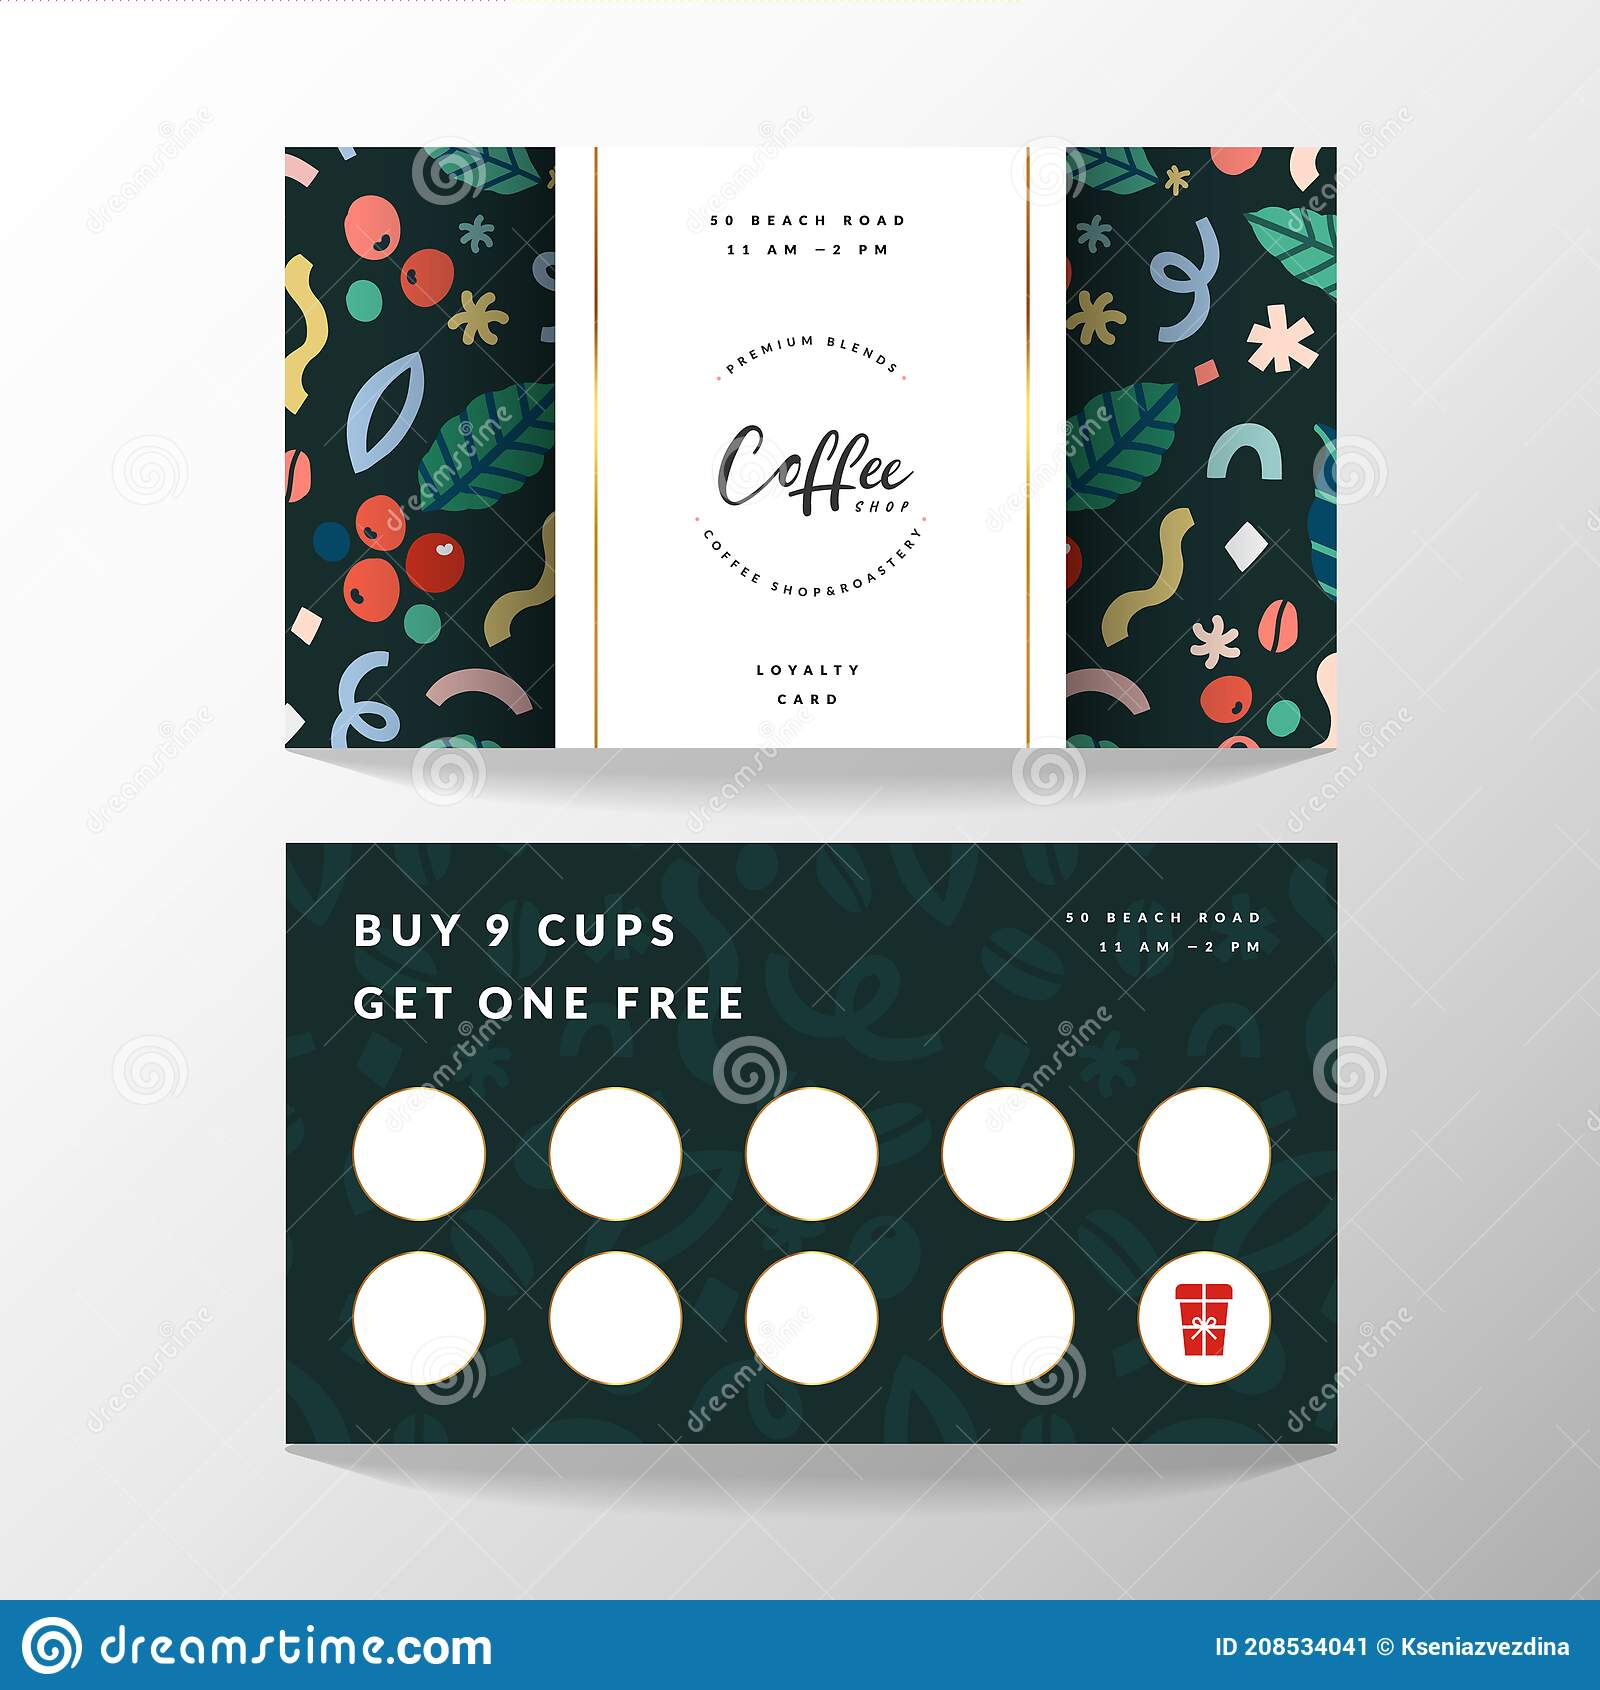 Loyalty Card Template Stock Illustrations – 21,0210 Loyalty Card Throughout Customer Loyalty Card Template Free